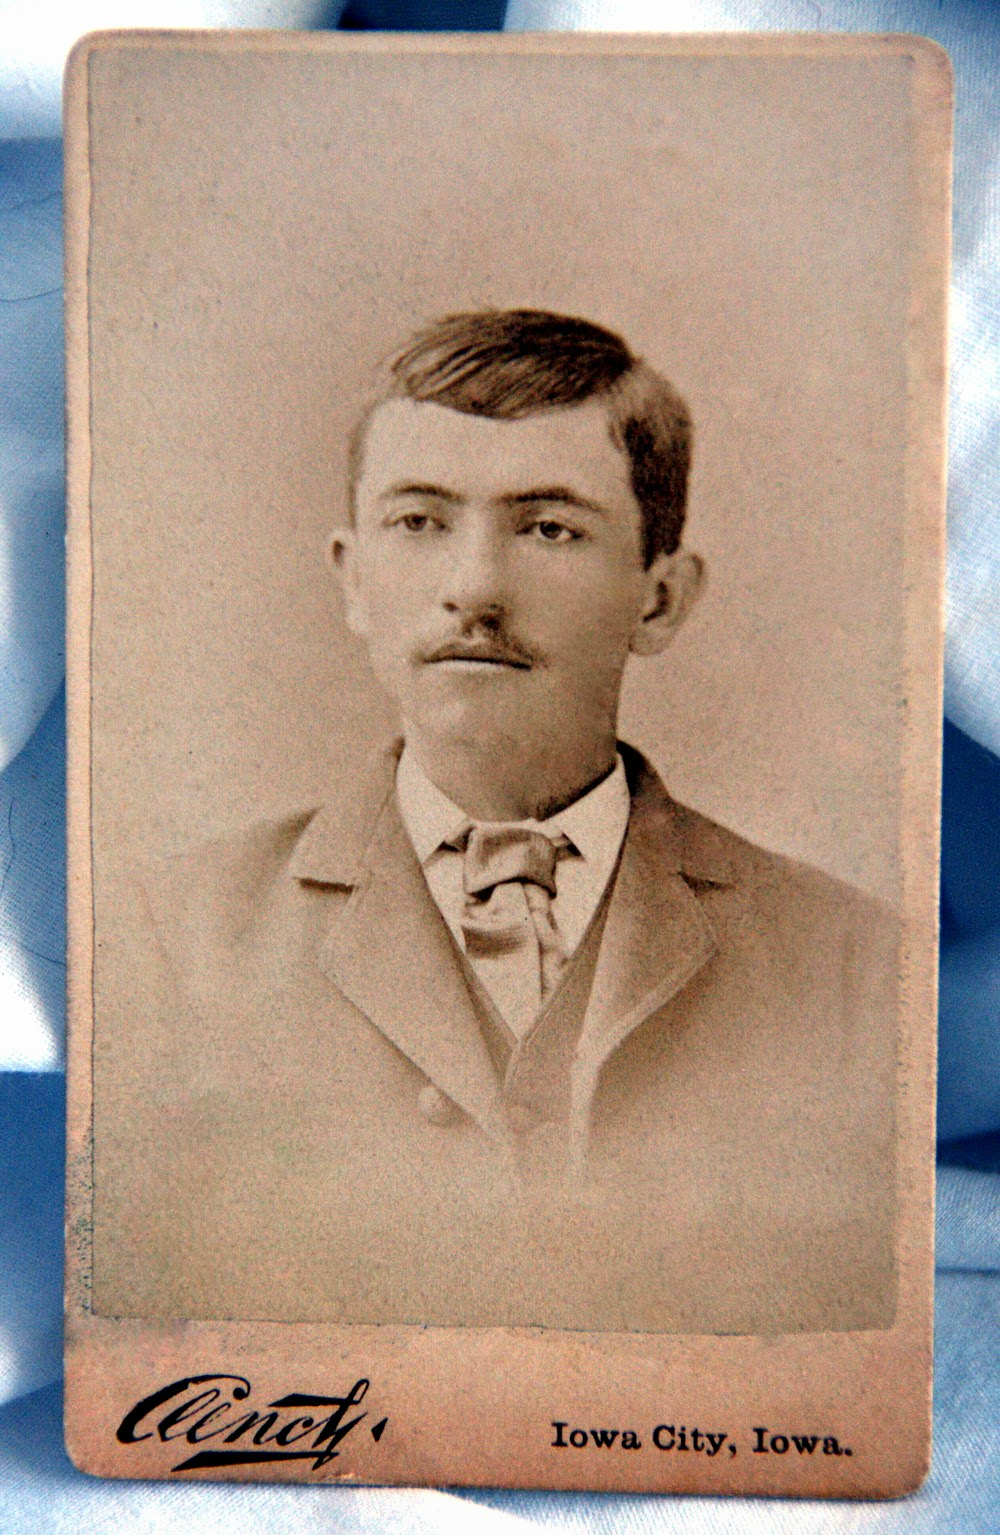 Montana sanders county dixon - This Photo Of One Brother Is Captioned William Frank Honberger In Eva Honberger S Family Album But Other Members Of The Family